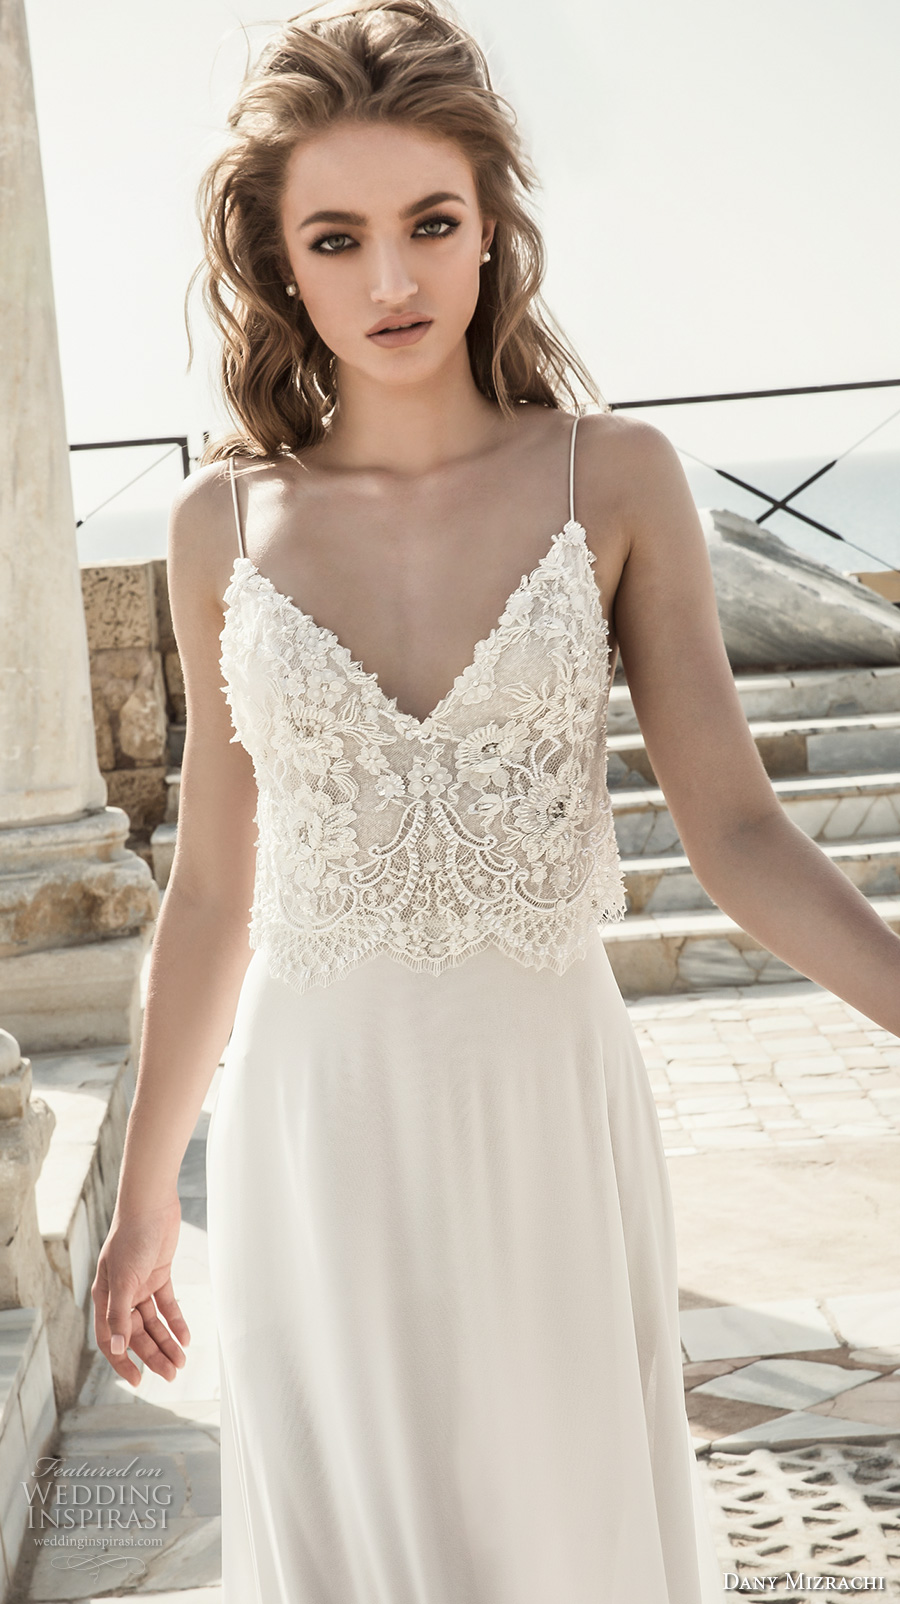 dany mizrachi 2018 bridal sleeveless spaghetti strap sweetheart neckline heavily embellished bodice lace top grecian column wedding dress (12) zv